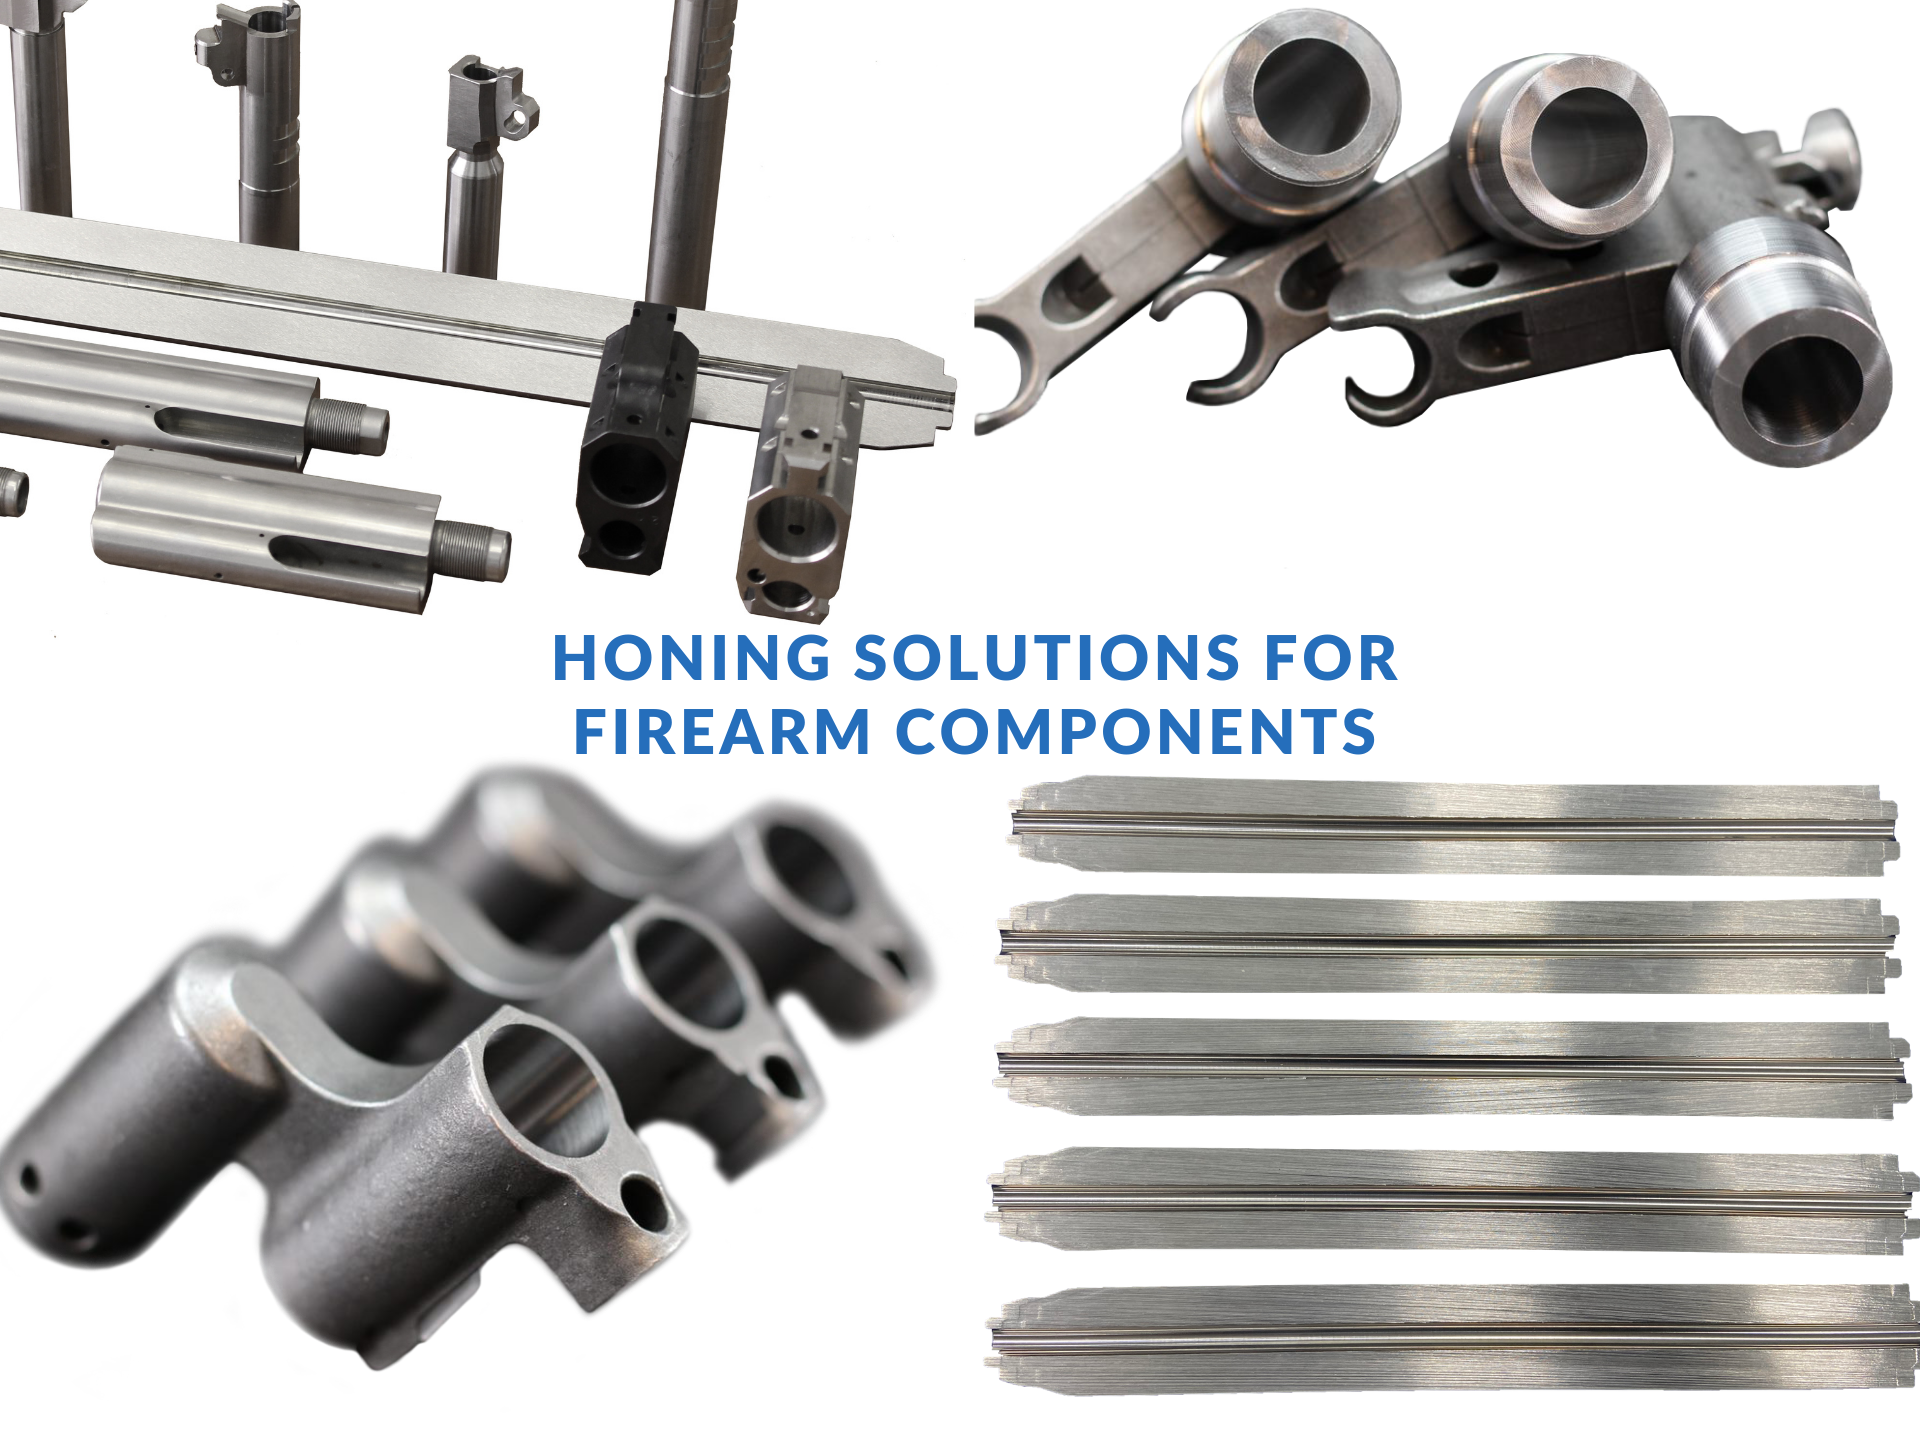 HONING SOLUTIONS FOR FIREARM COMPONENTS